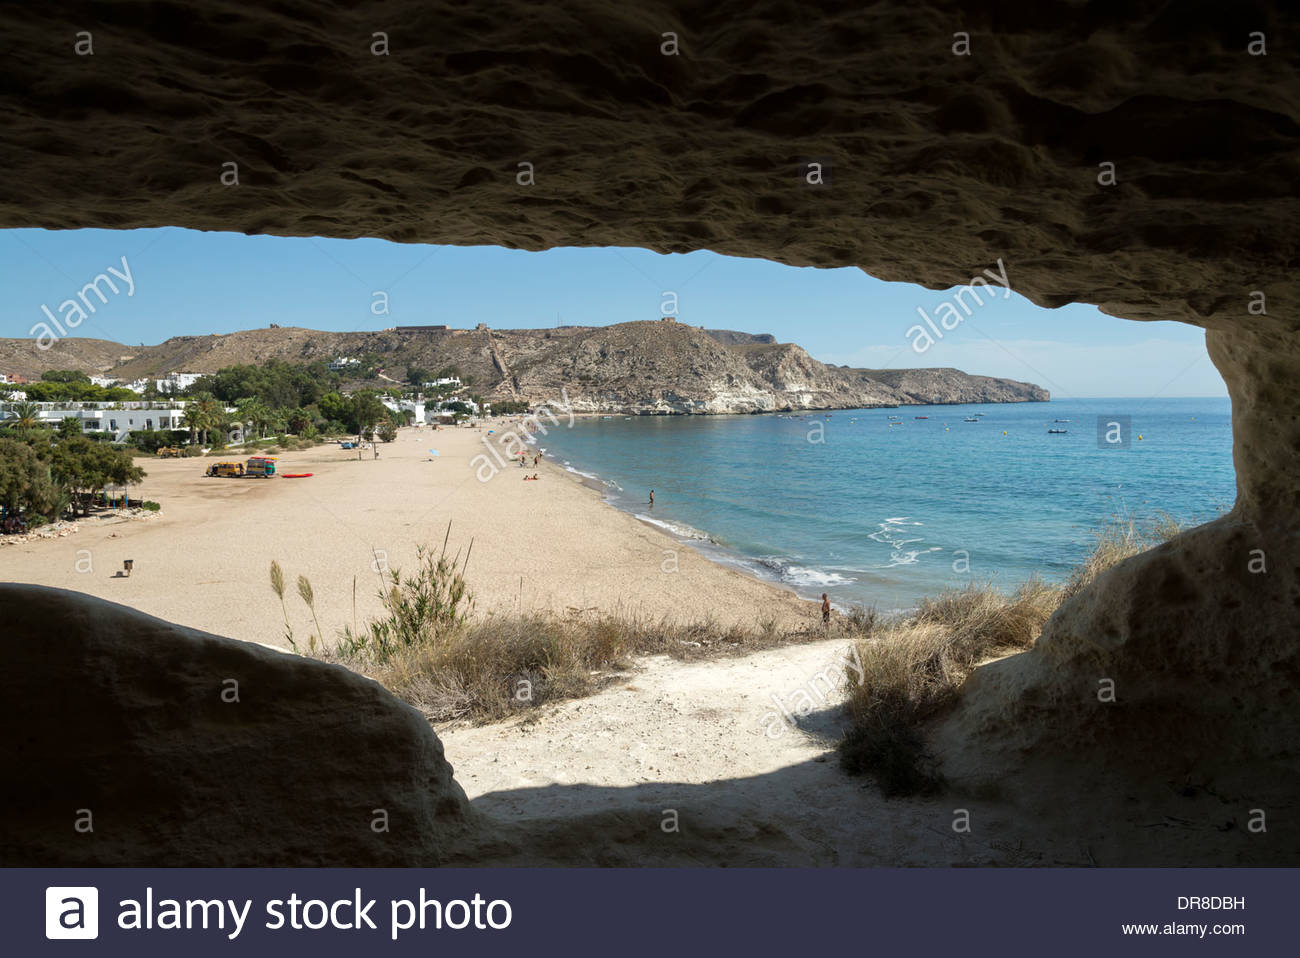 Playa Agua Amarga viewed from one of the caves in the rocks, Cabo de Gata-Nijar, Andalusia, Spain - Stock Image